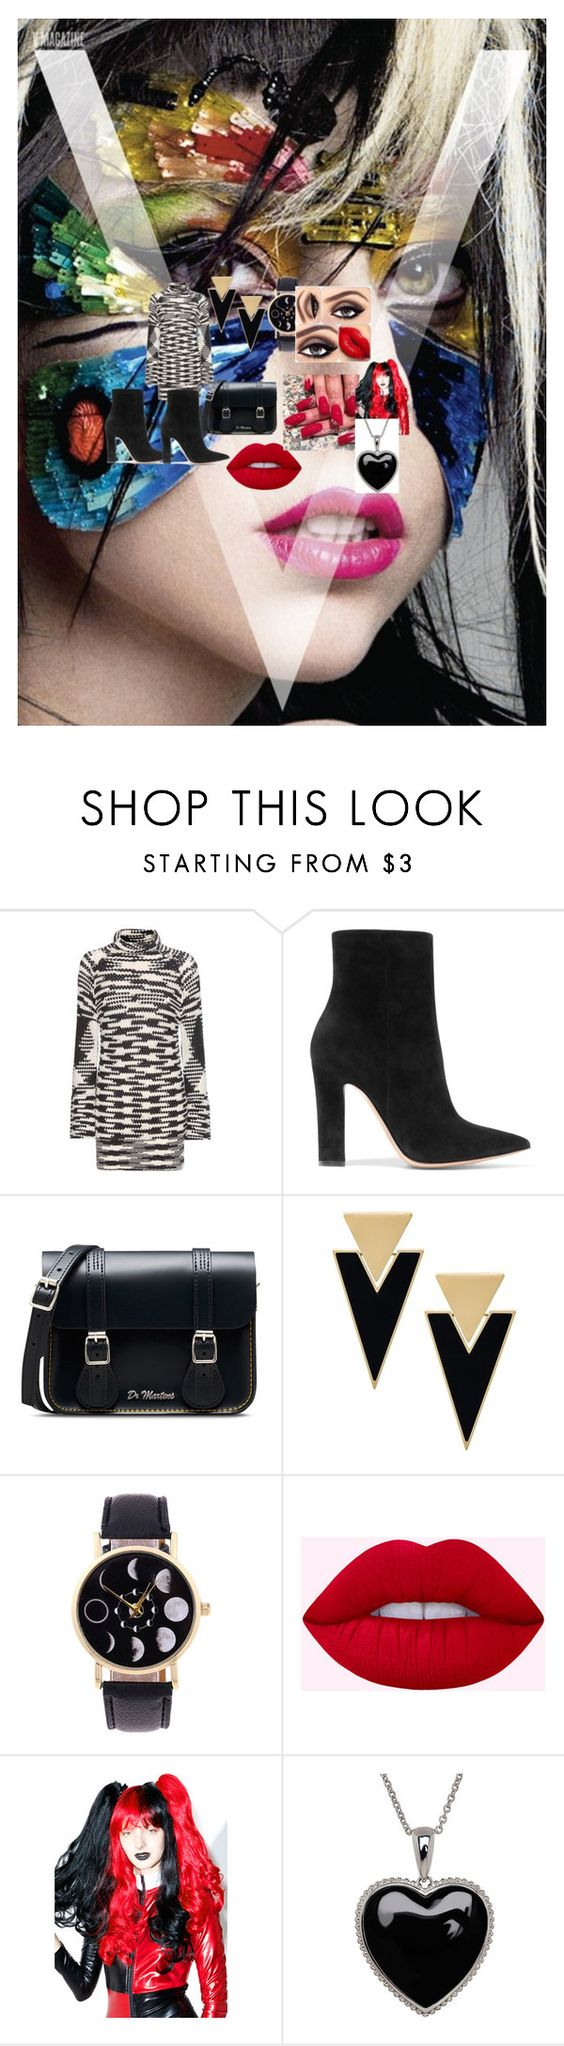 """""""blac"""" by heike5 ❤ liked on Polyvore featuring Missoni, Gianvito Rossi, Dr. Martens, Yves Saint Laurent, Leg Avenue and Lord & Taylor"""